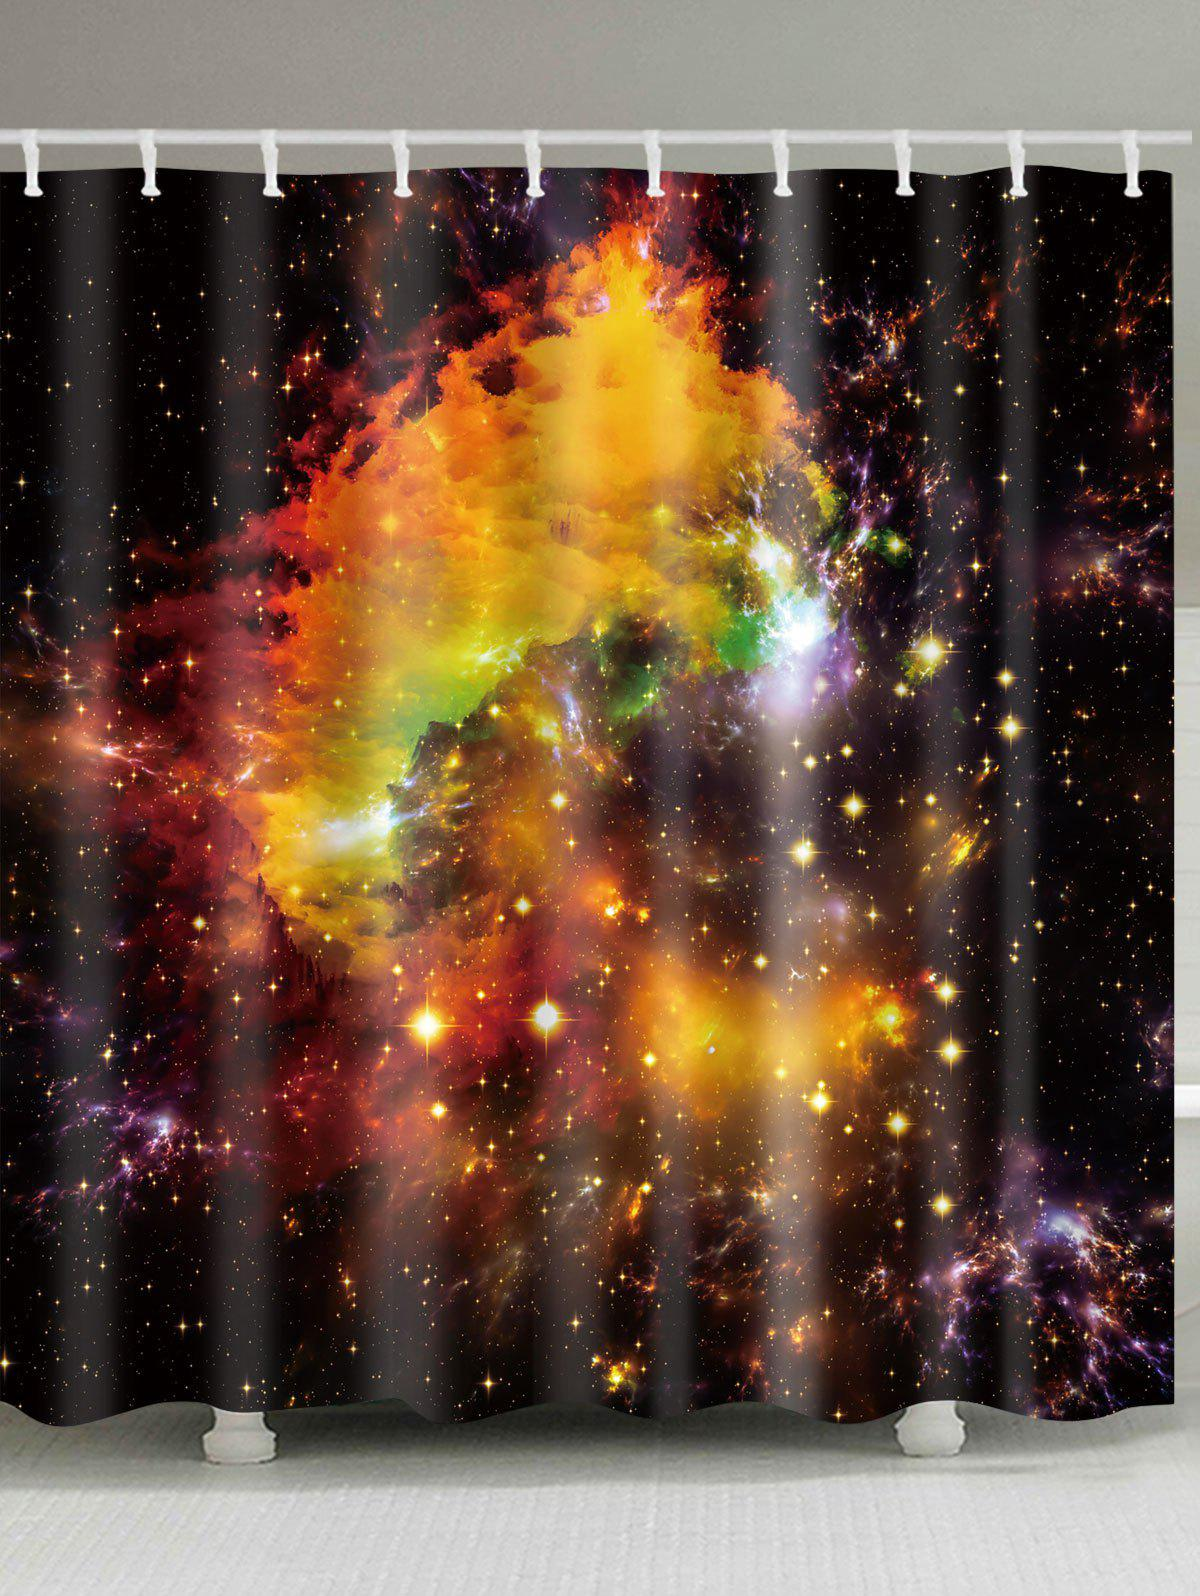 Galaxy Shower Curtain Outer Space Nebula View Print for Bathroom